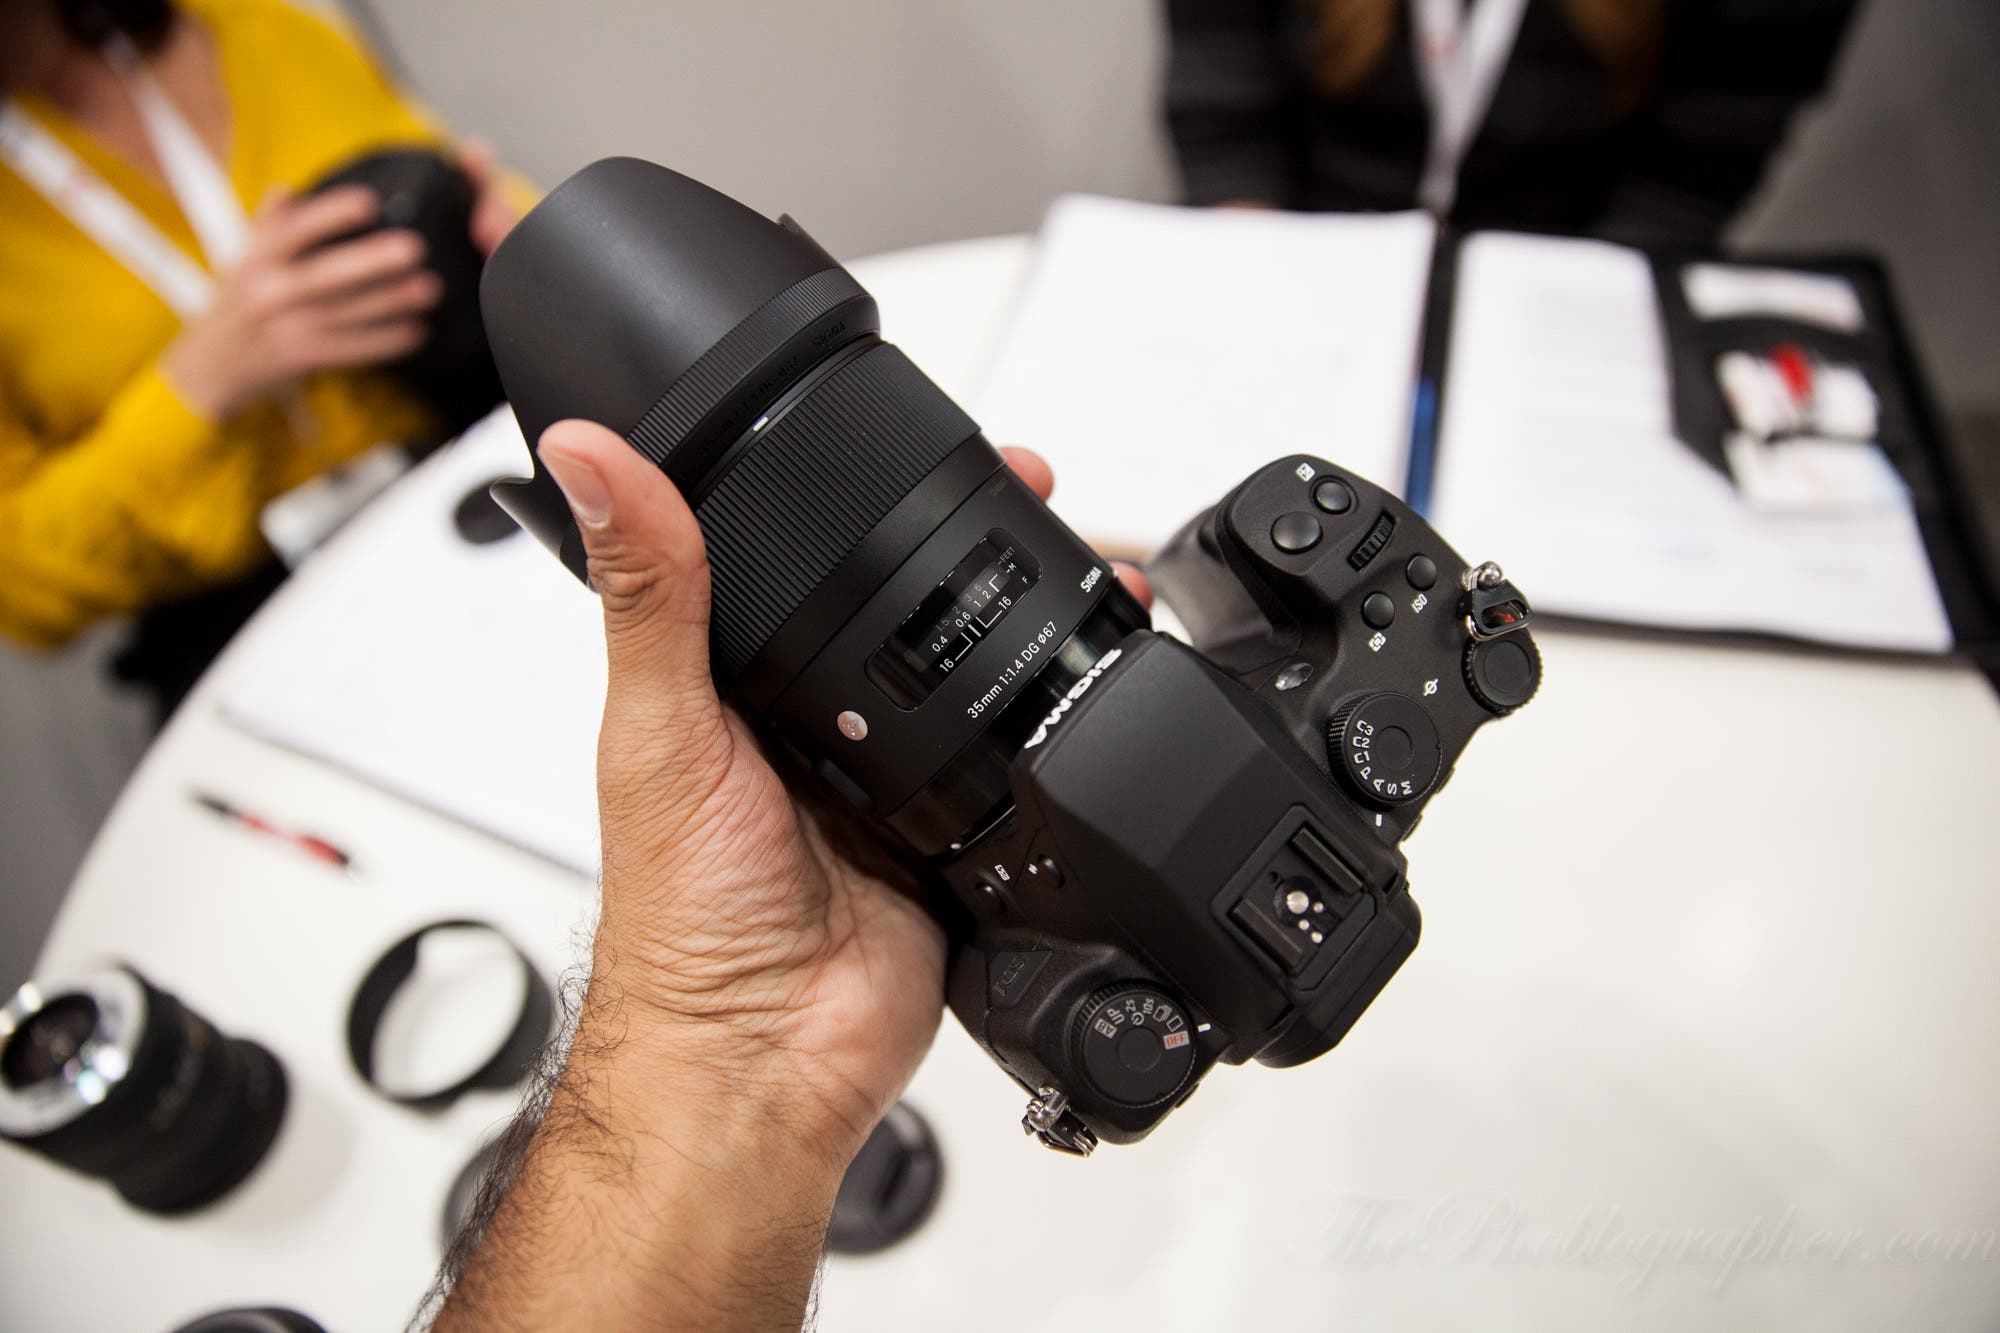 First Impressions: Sigma 120-300mm f2.8 DG OS HSM and 35mm f1.4 DG HSM